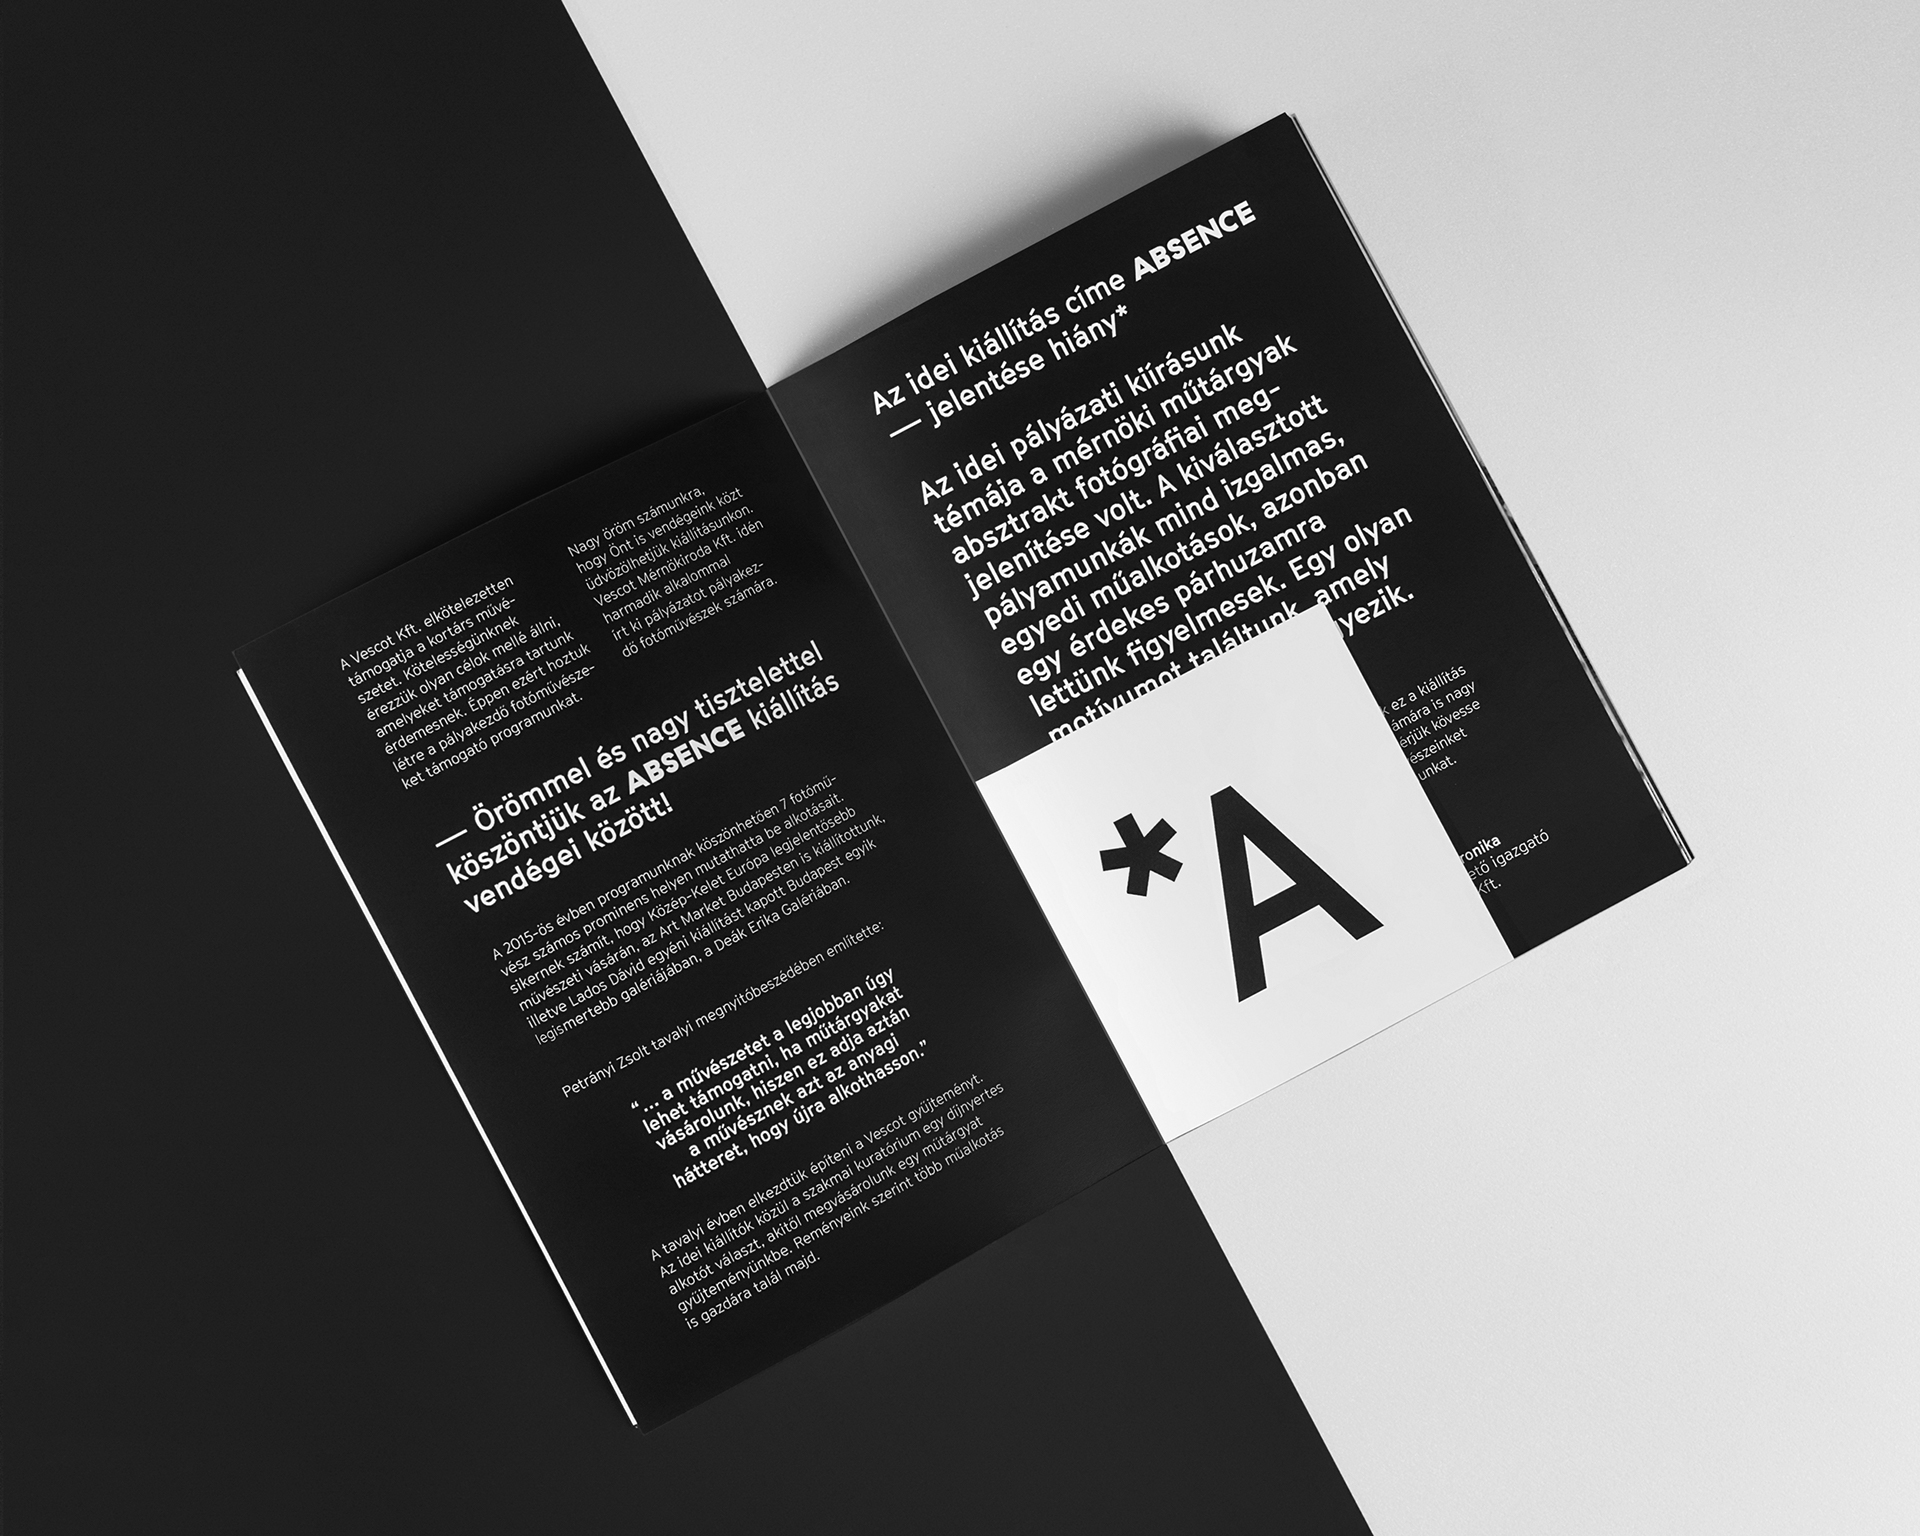 Absence Exhibition Identity On Behance